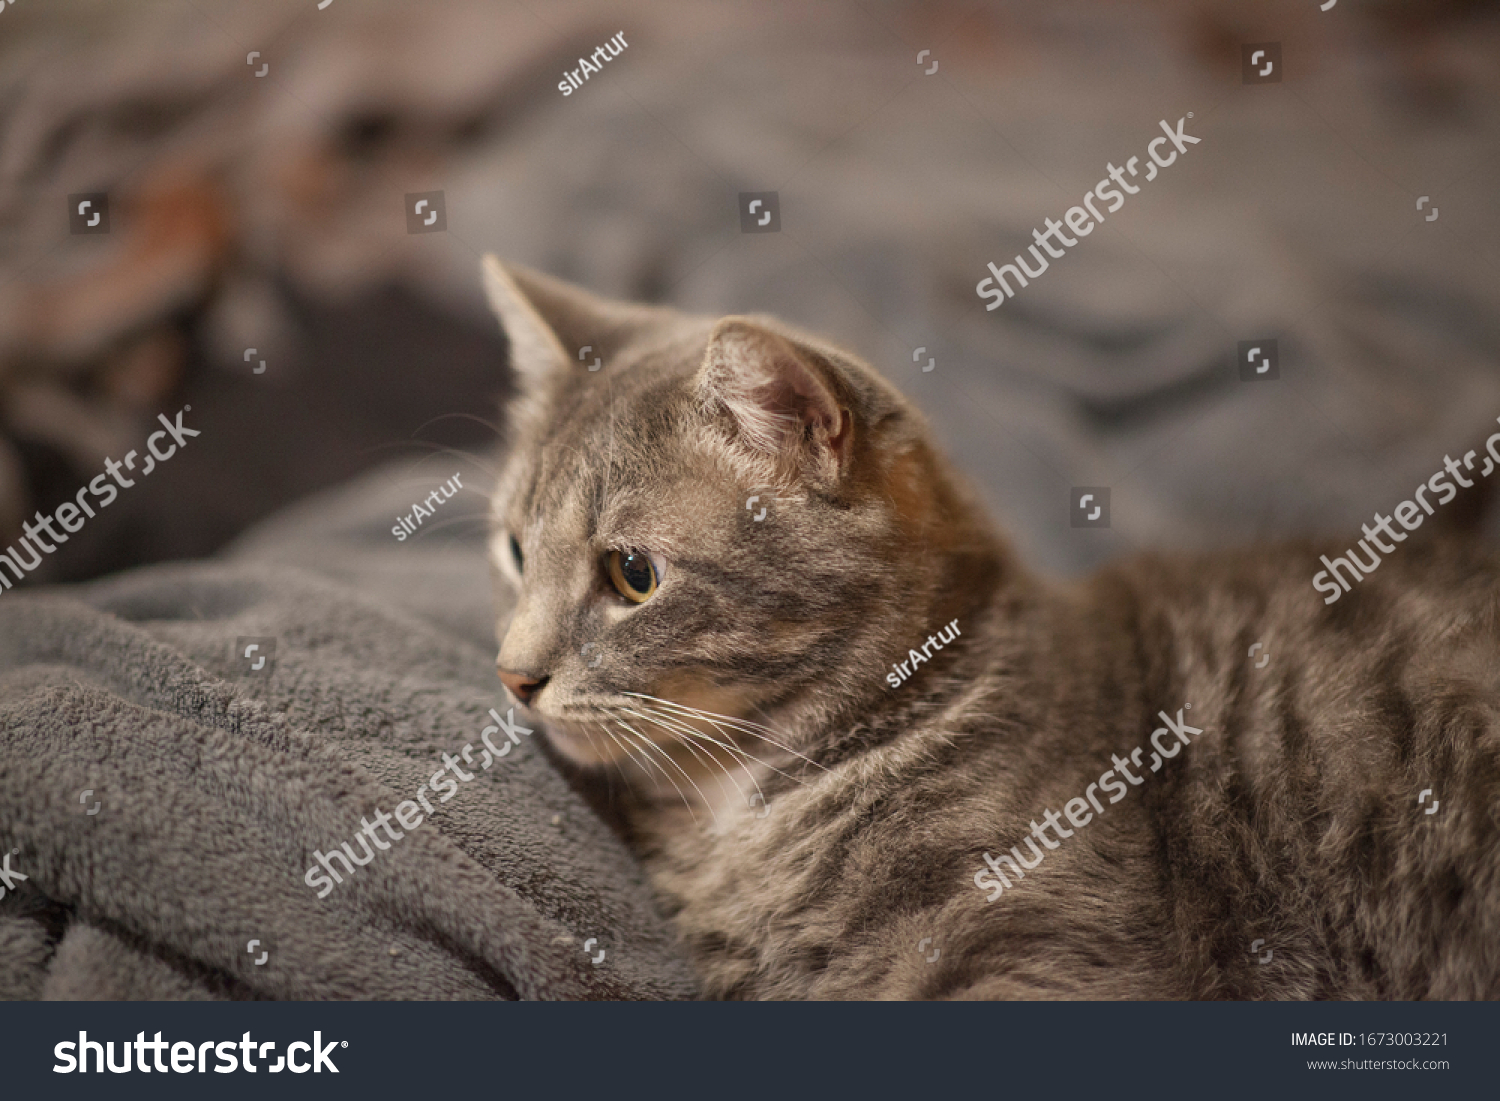 stock-photo-the-image-of-one-cat-a-portr